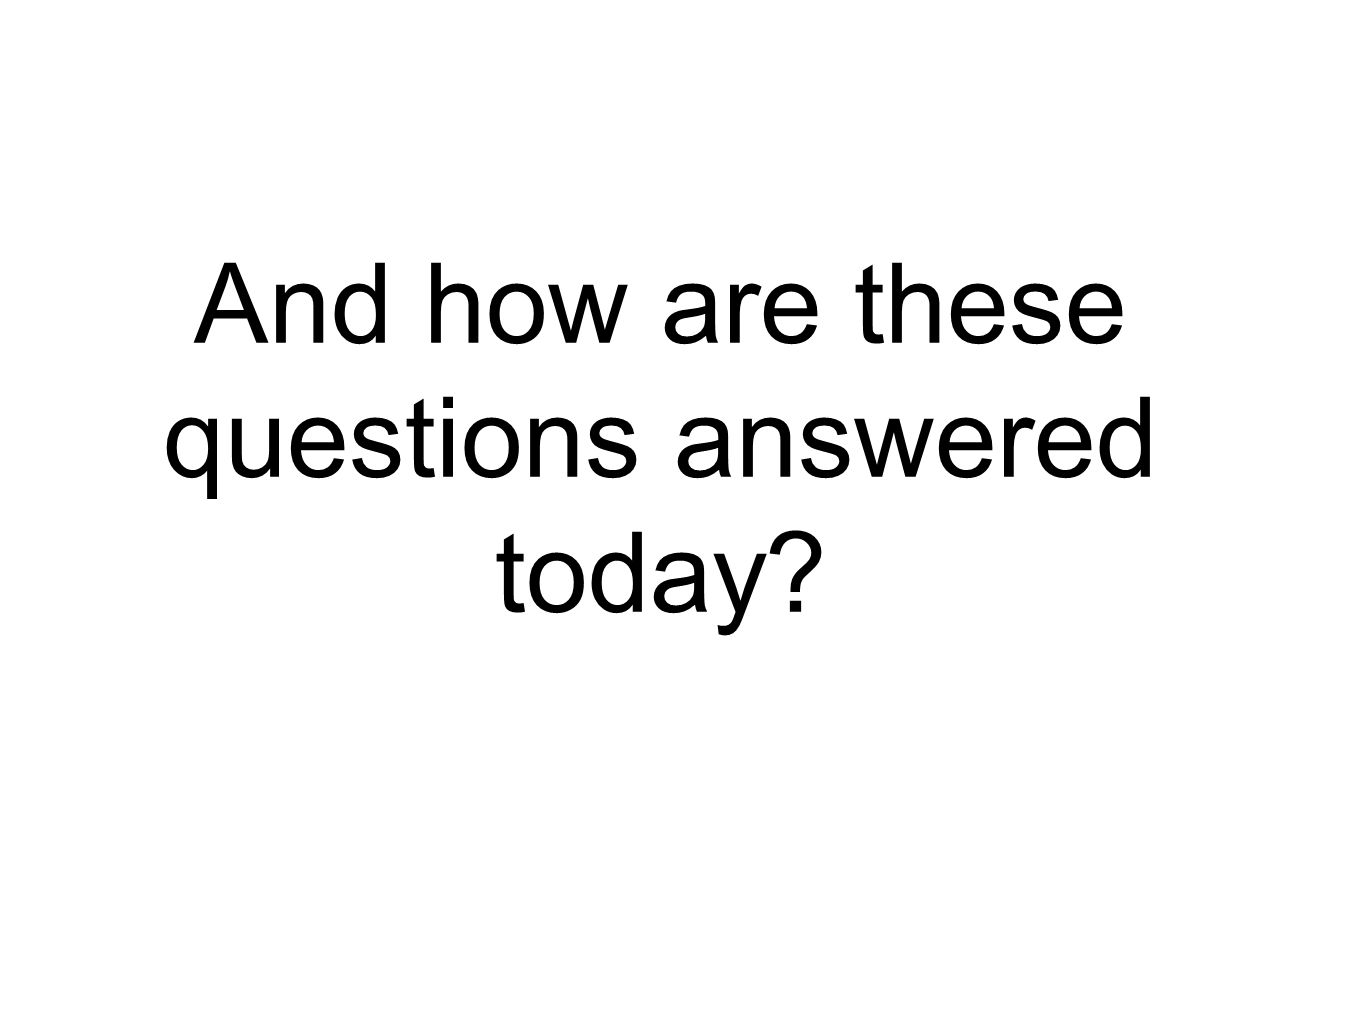 And how are these questions answered today